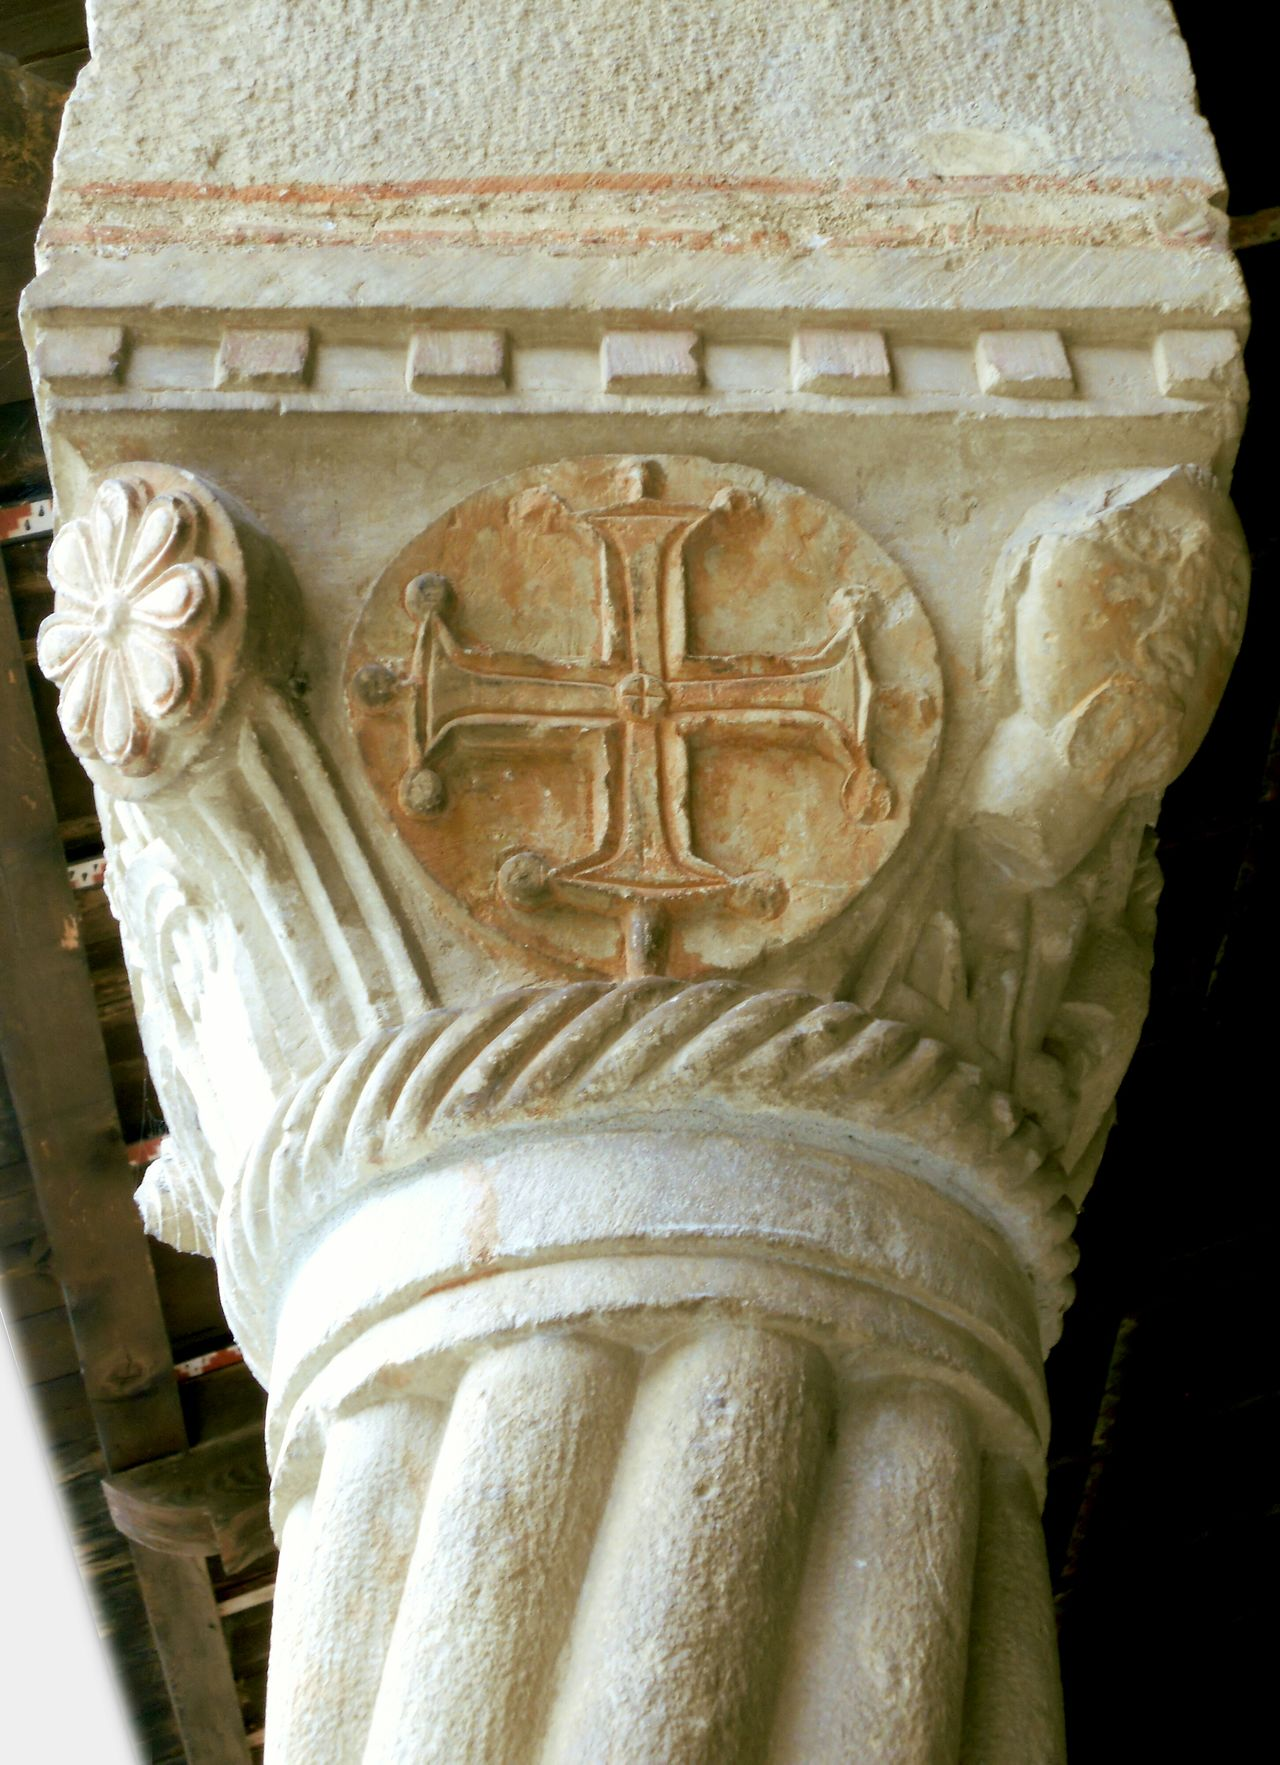 Medieval Capital Stone Greek Symbols Cross Romanesque Religious  Church Basilique Column Capitals